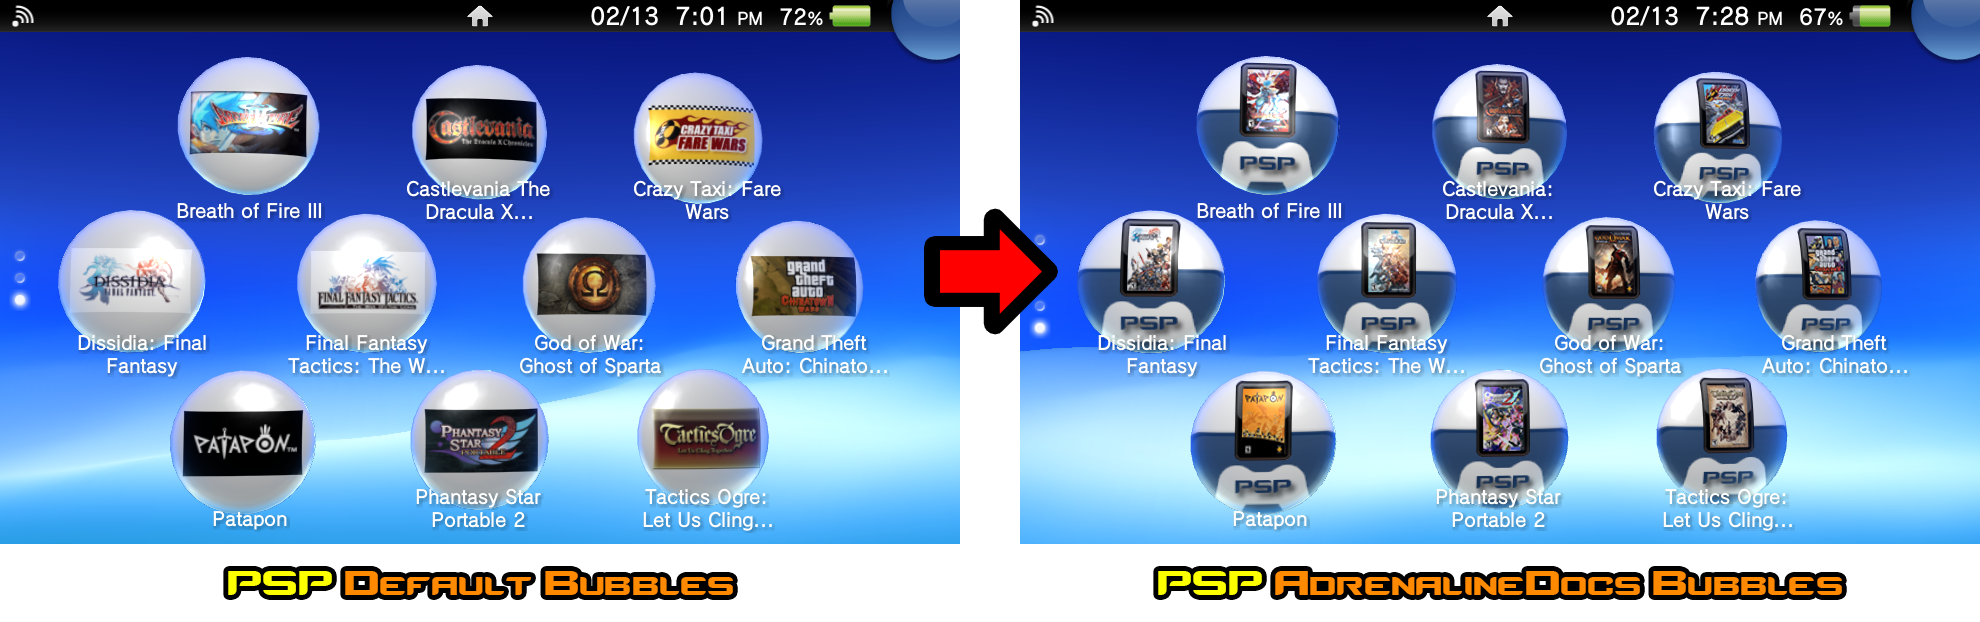 psp-1.png